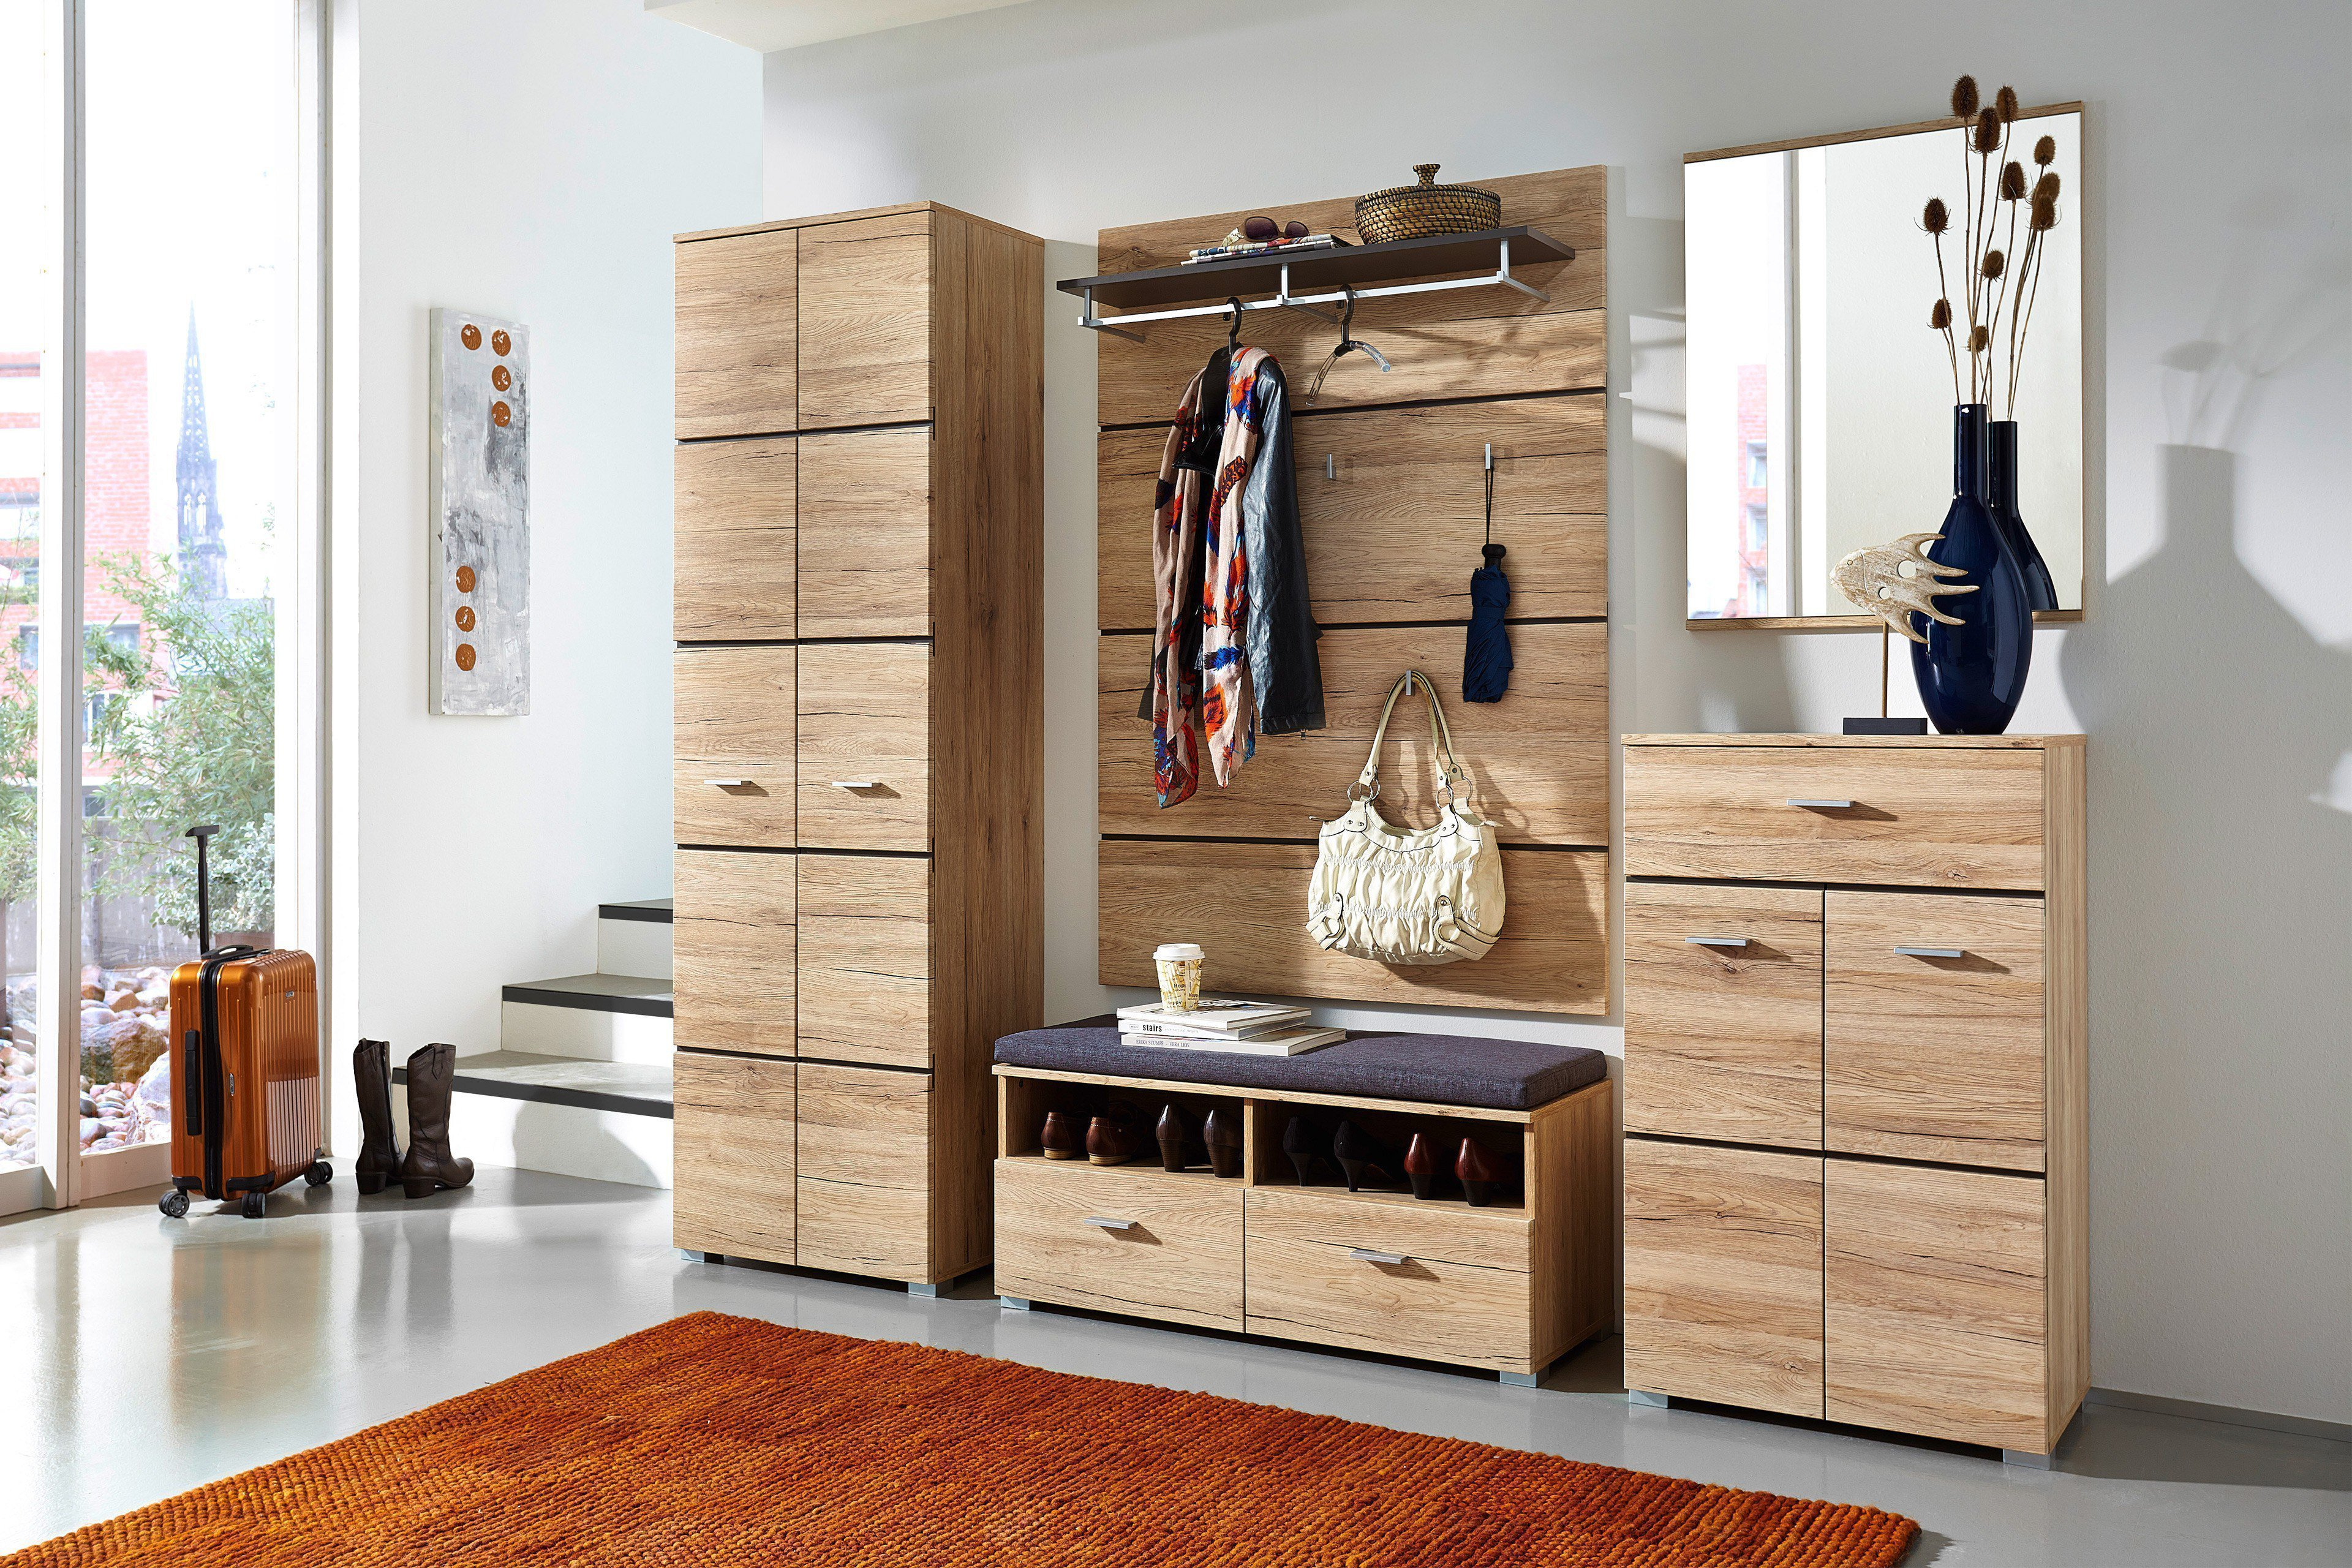 innostyle garderobe fresh sanremo eiche m bel letz ihr online shop. Black Bedroom Furniture Sets. Home Design Ideas